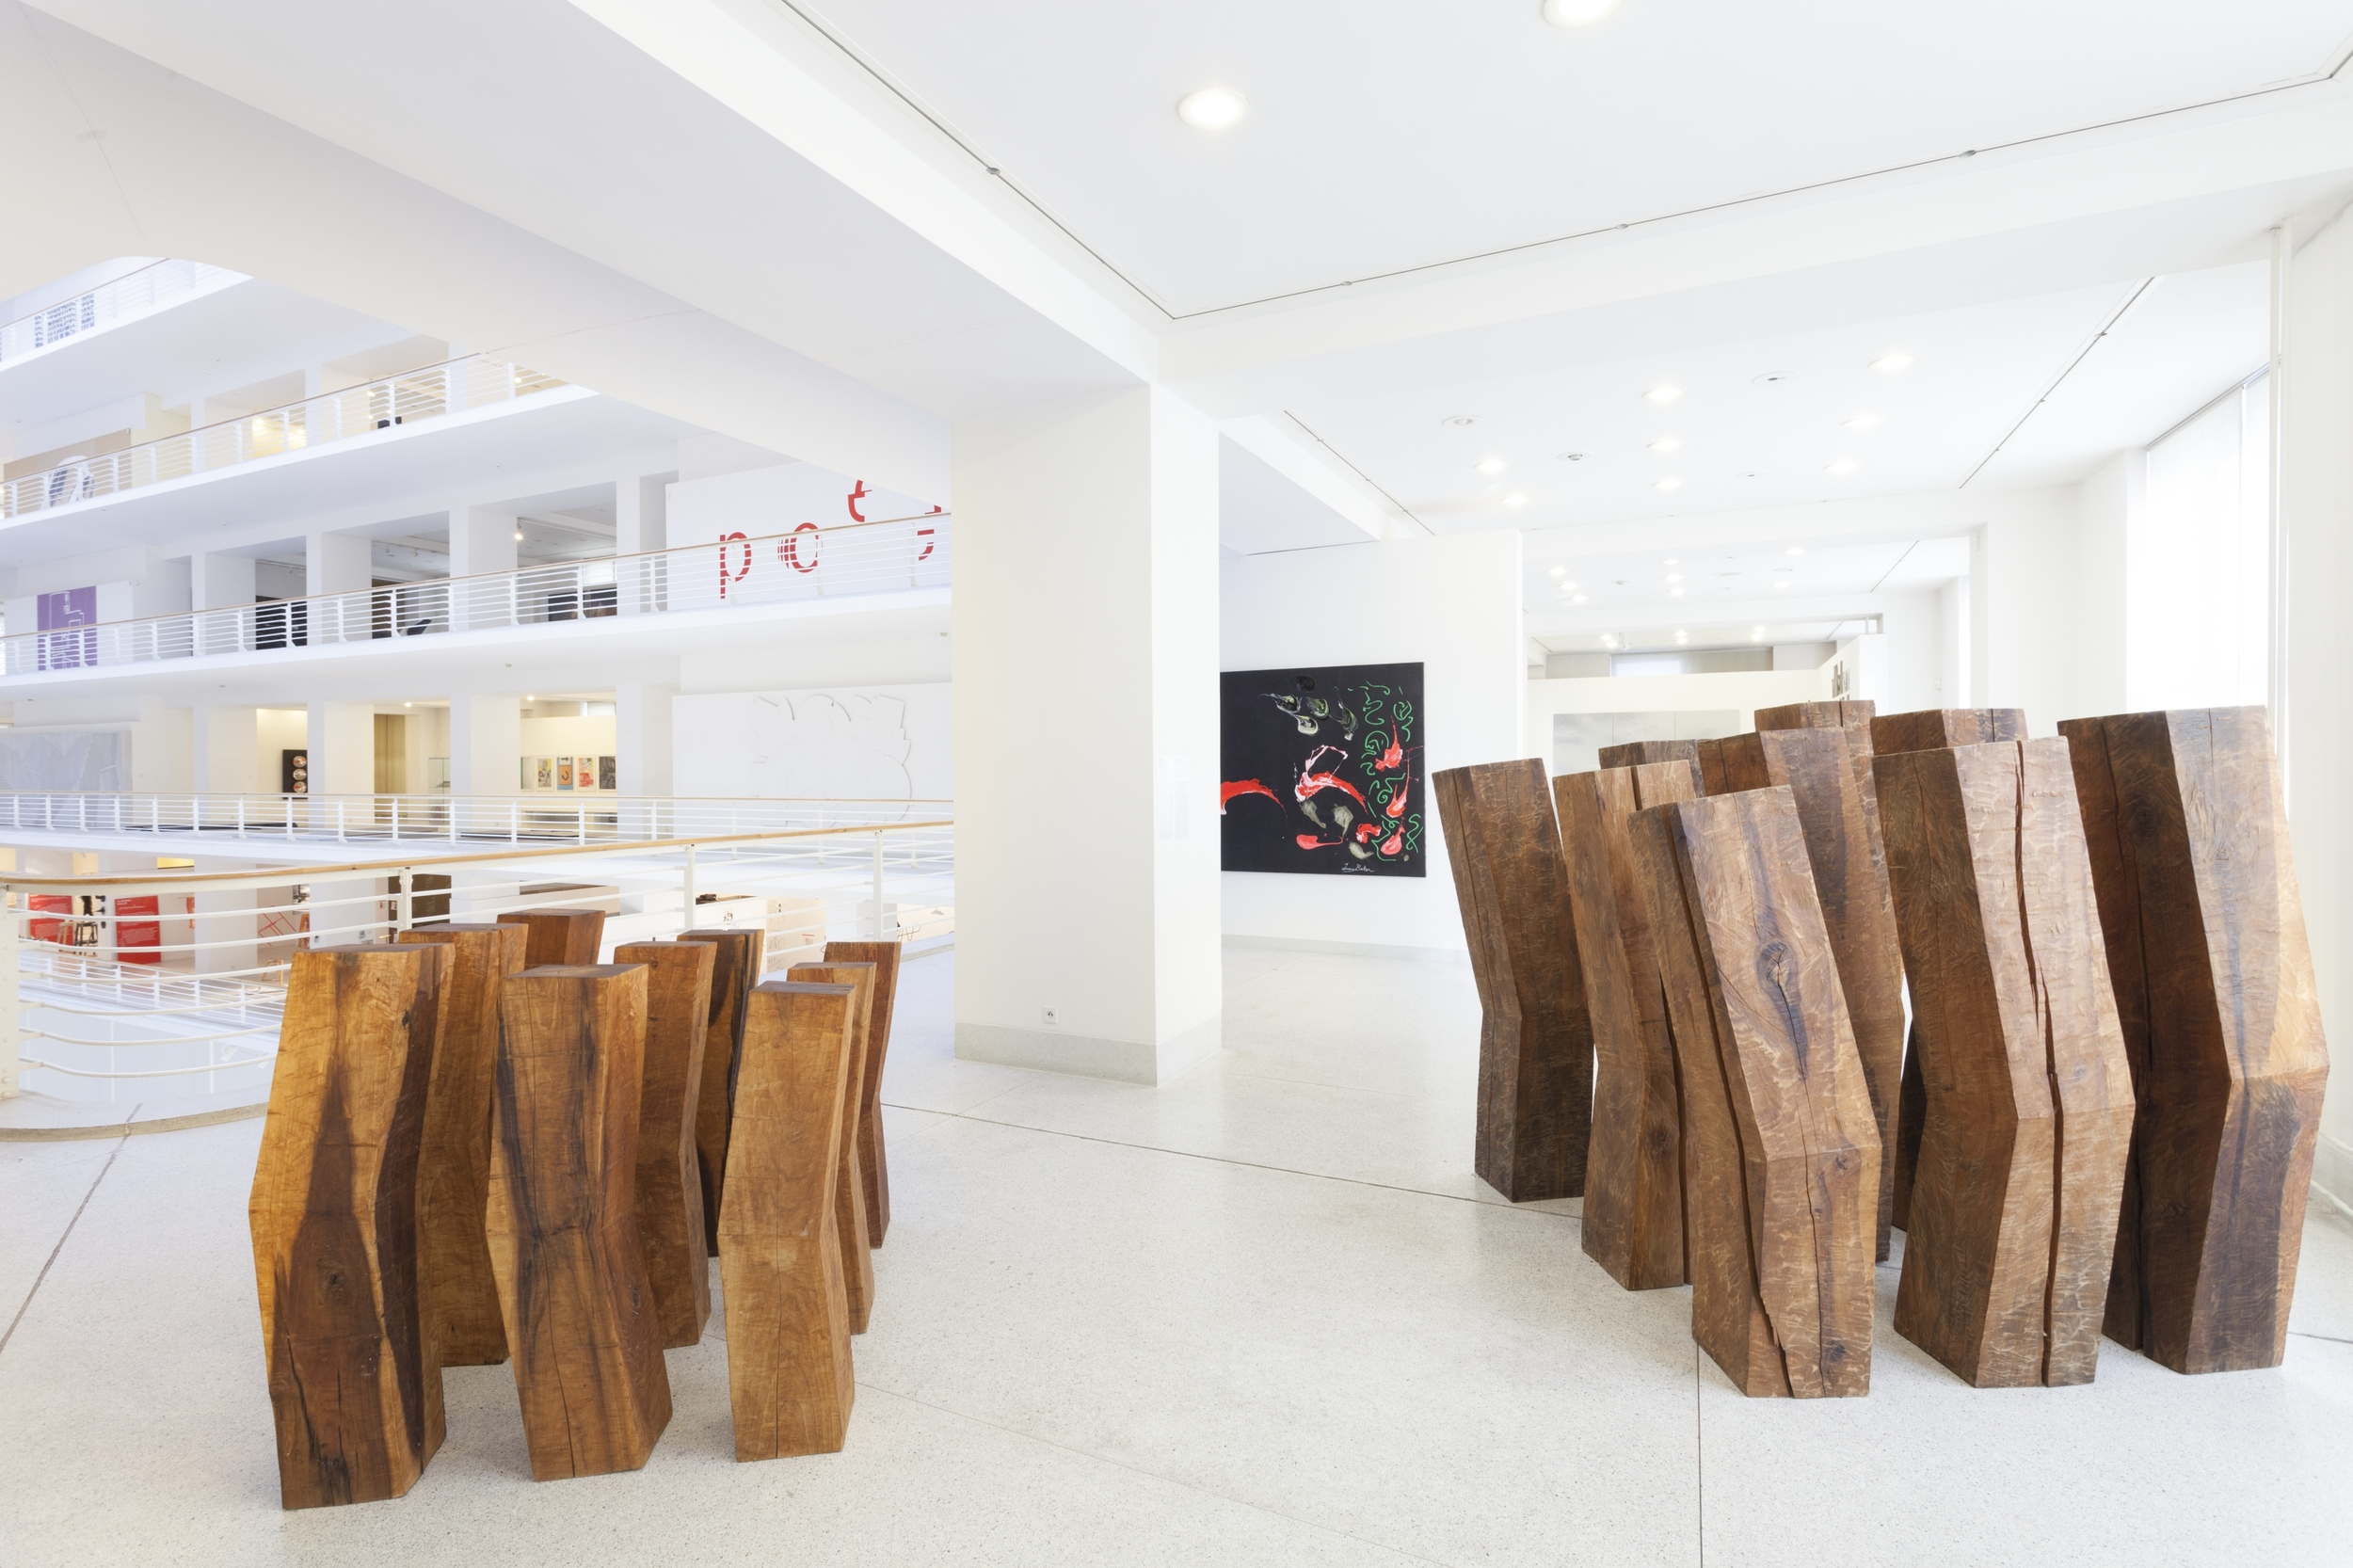 Broken Blocks II , left, and  Broken Blocks III , right, as they stand in the Veletrzni Palace in the National Gallery in Prague. Image courtesy of the National Gallery in Prague.